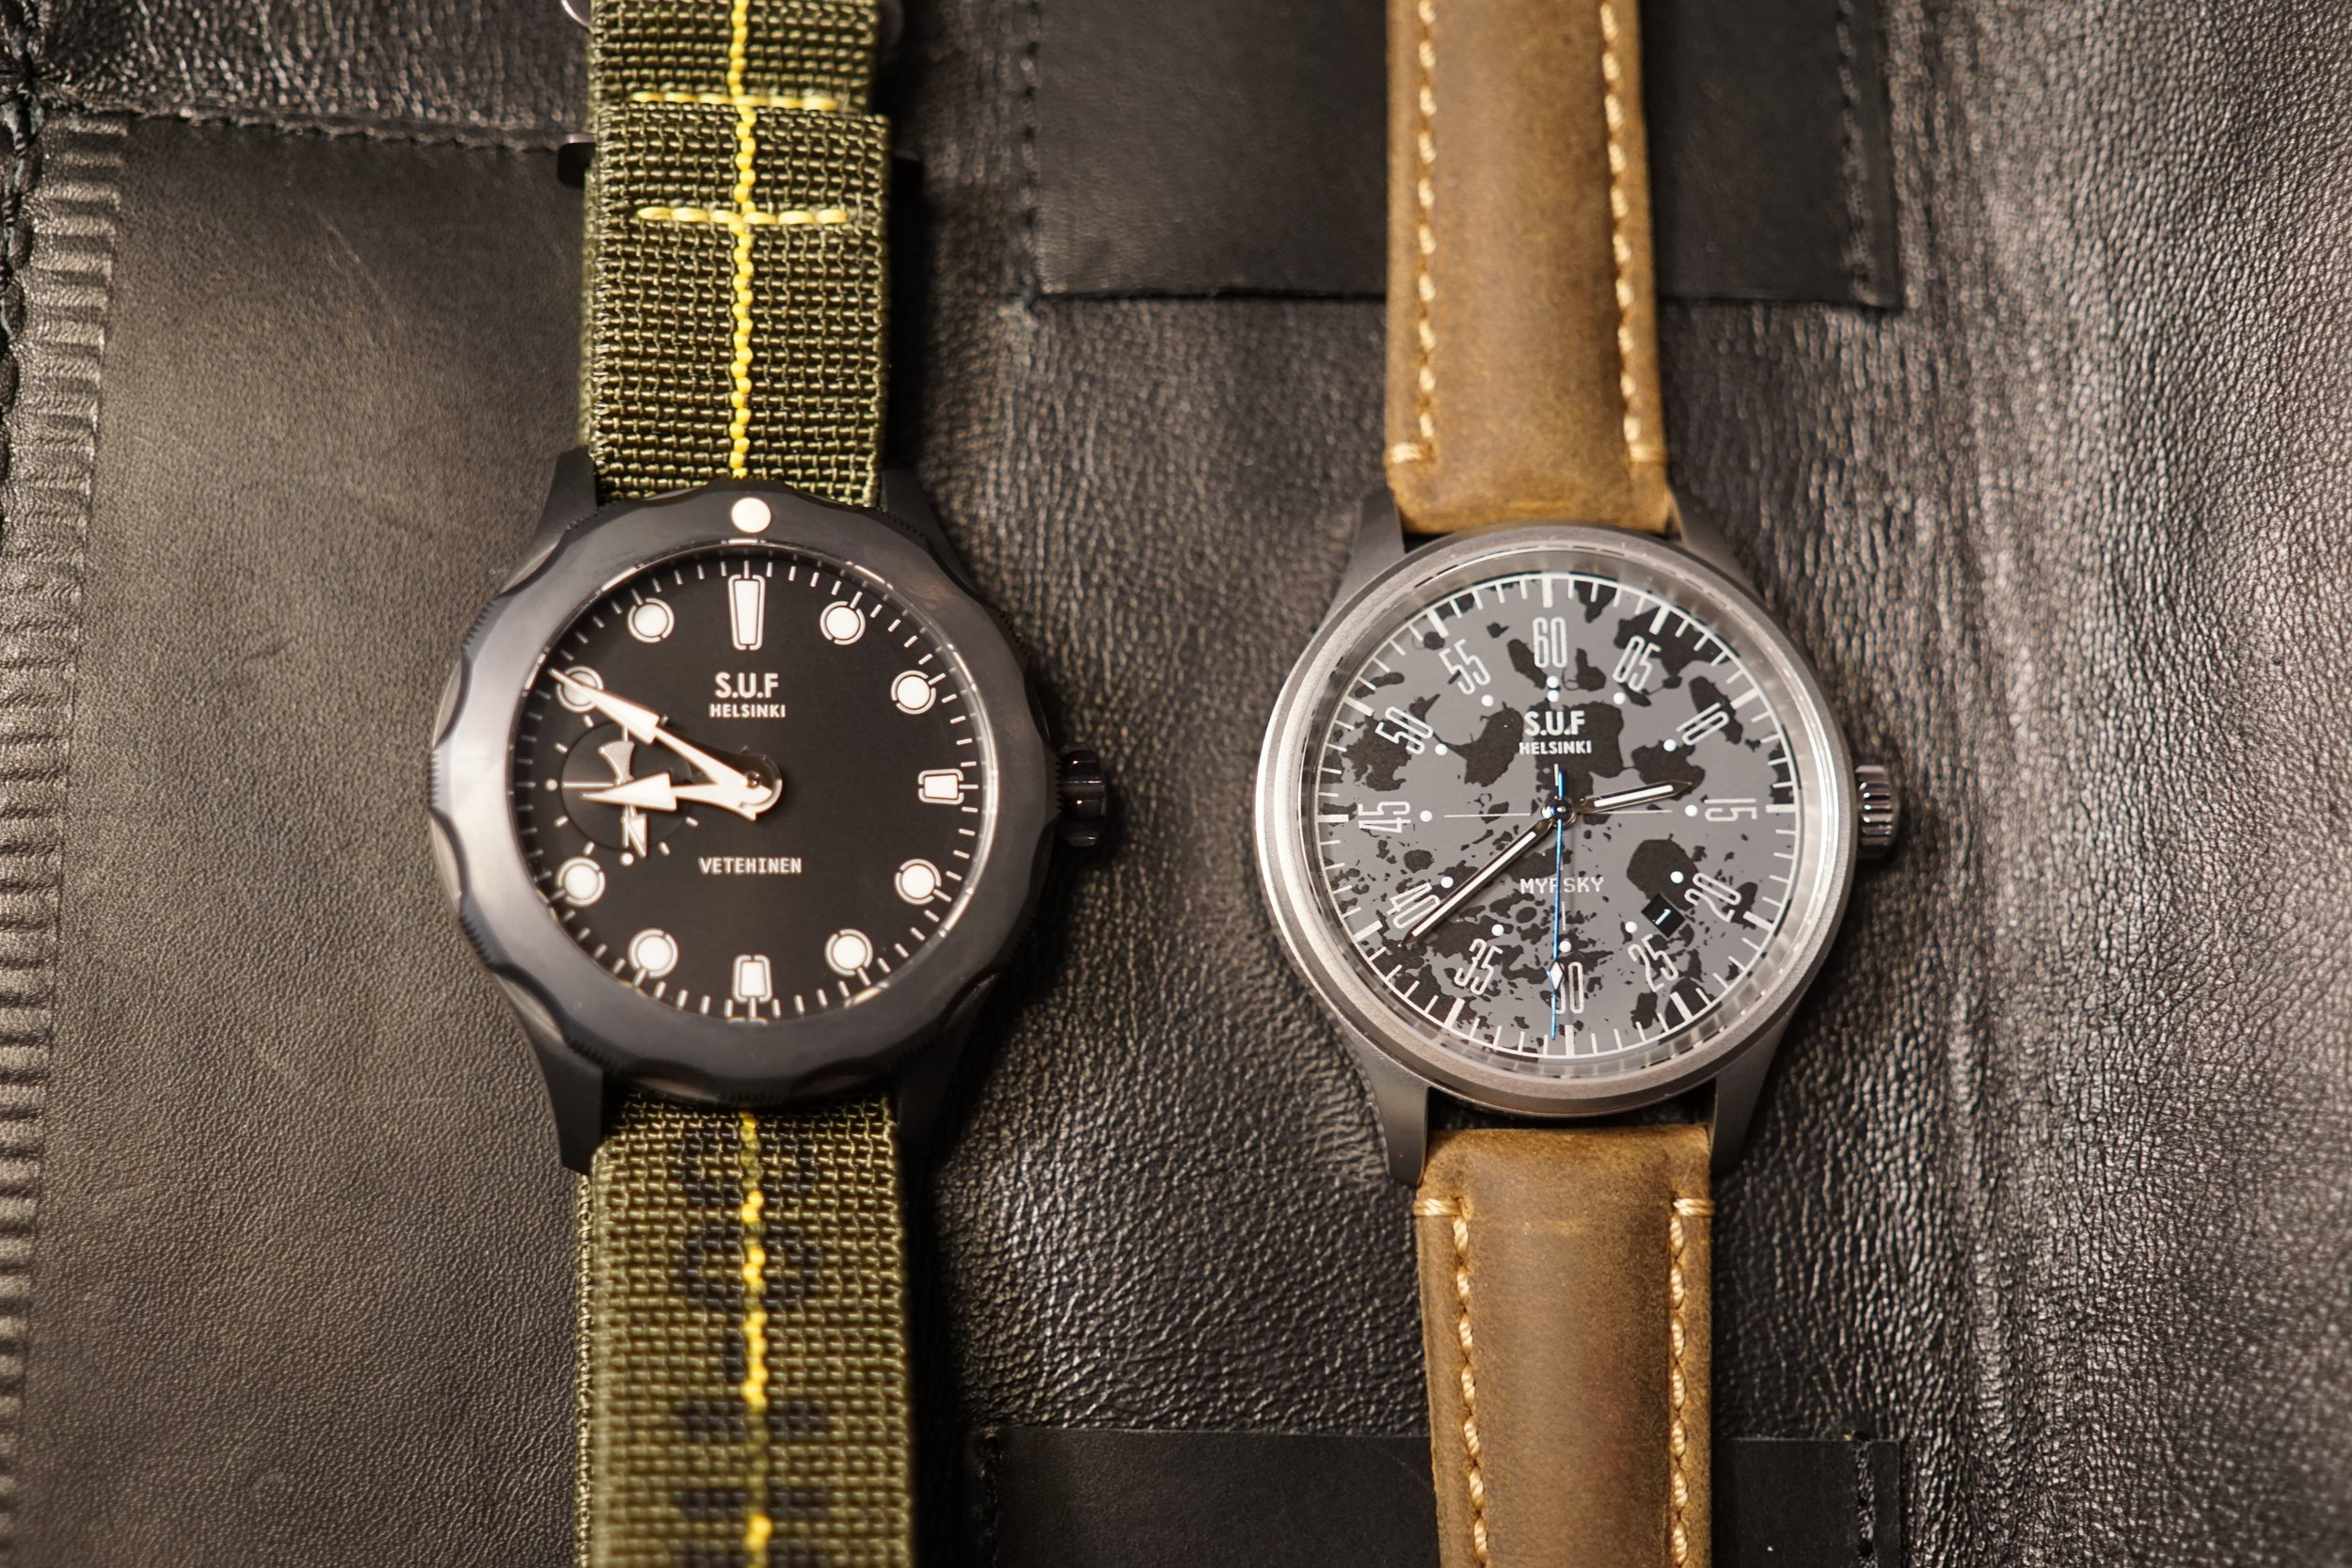 On the left the yet-to-be-released S.U.F. Vetehinen with a DLC coated case, and on the right a new S.U.F. collaboration with Makia, the Myrsky Archipelago.